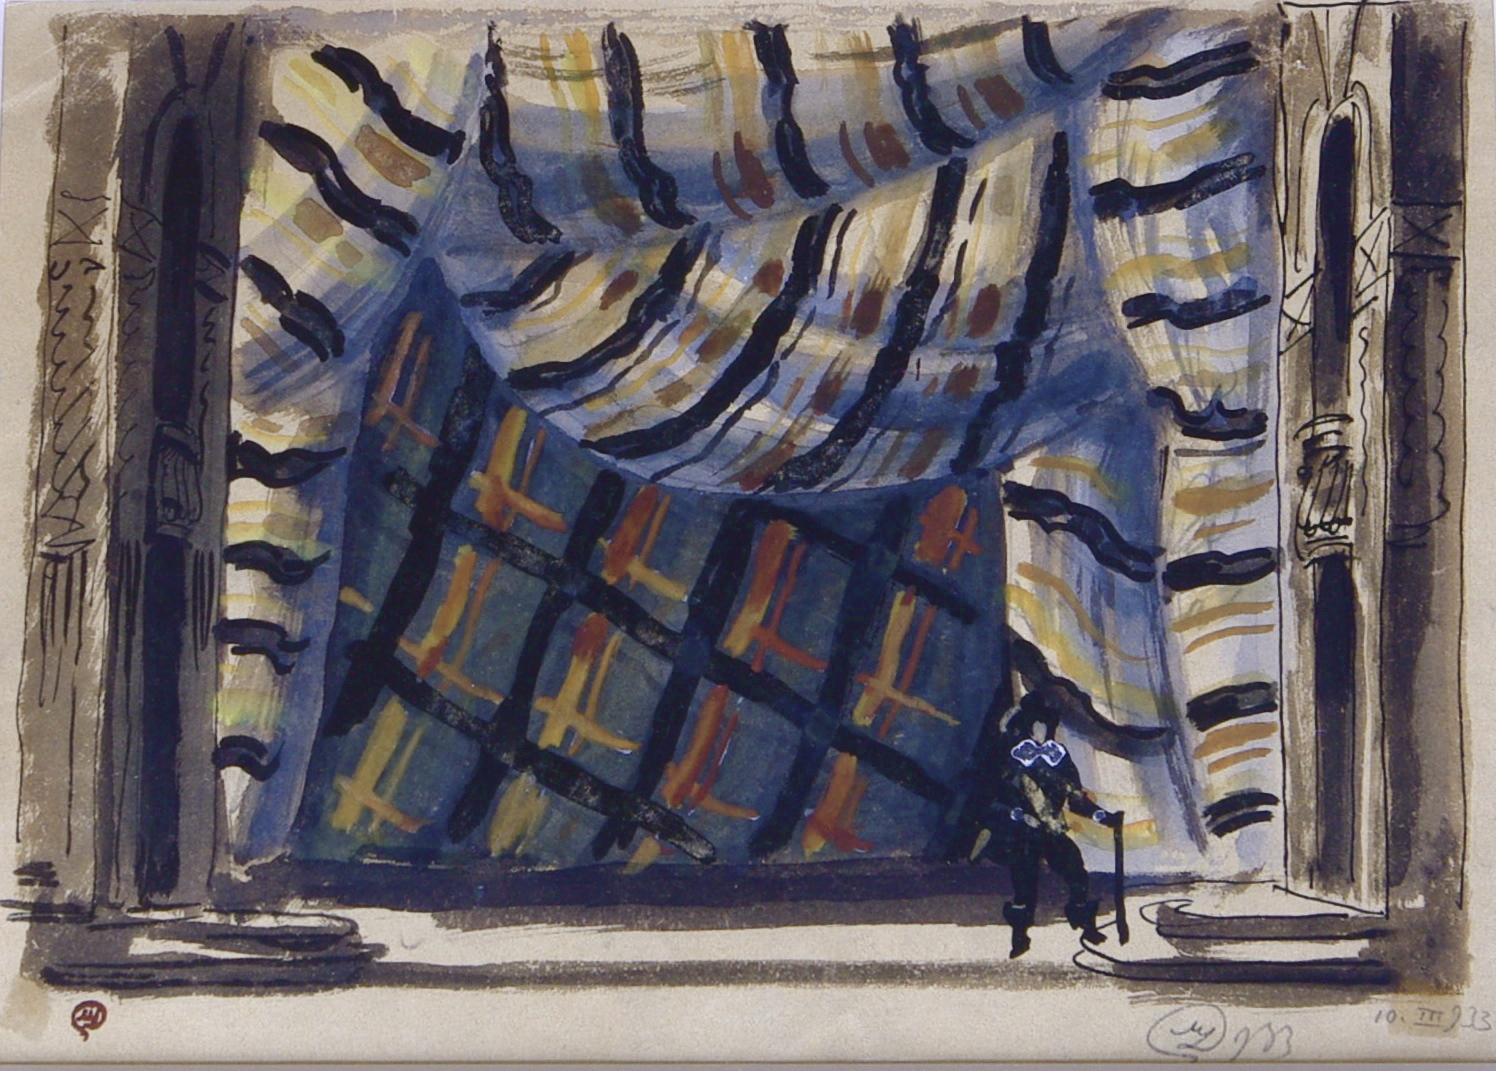 """Stage design for play """"Don Juan"""". Gouache on paper.  Stage design for play """"Don Juan"""". Gouache on paper. Size 26 x 20 cm. Signed and dated 1933."""